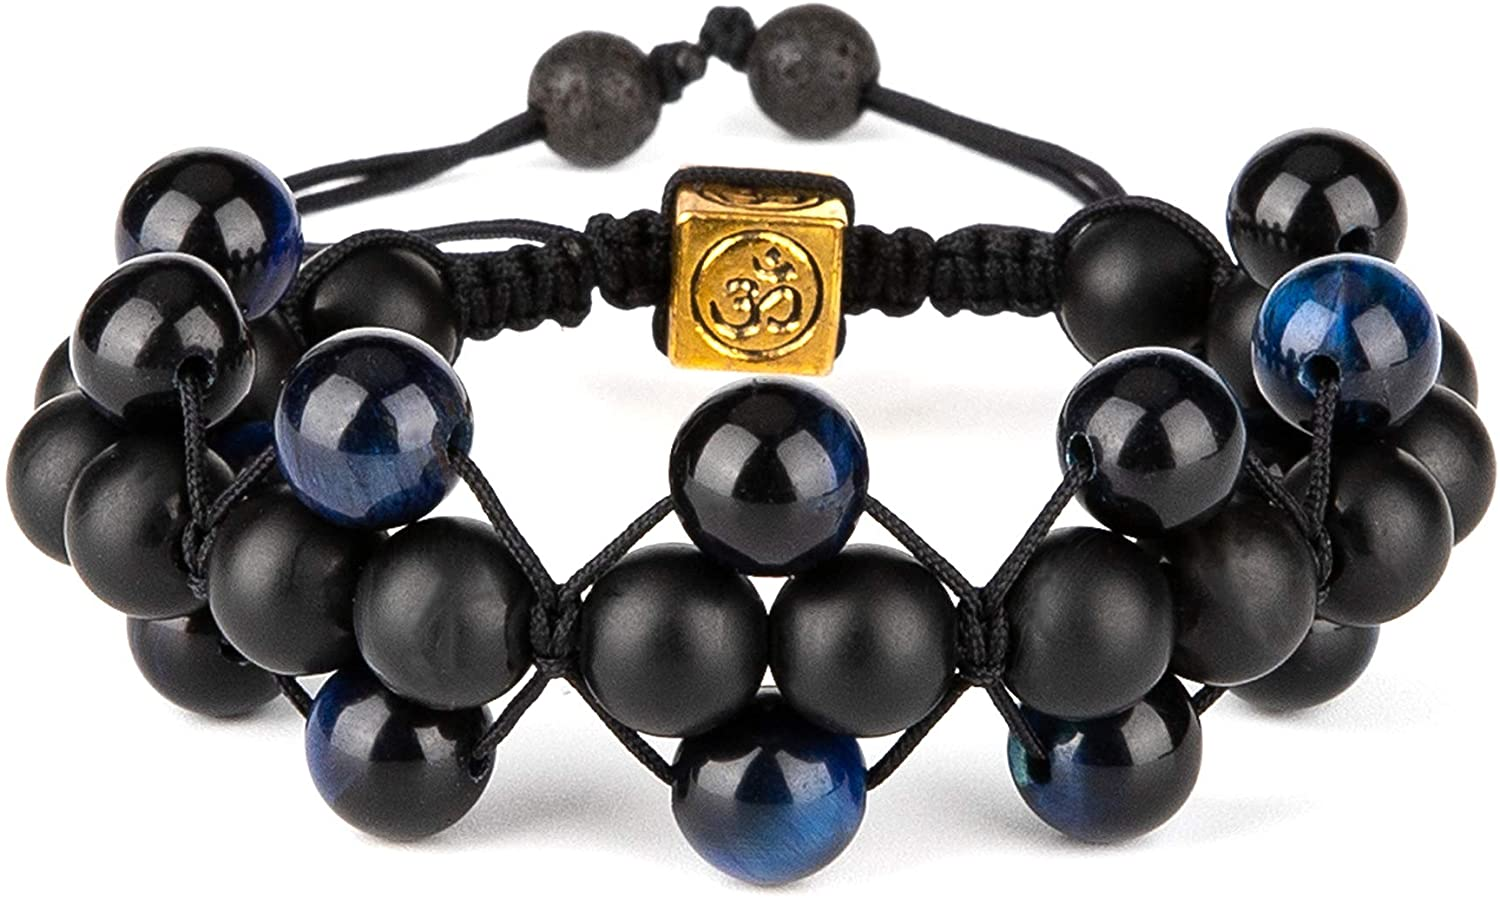 Bivei 8mm Tiger Eye Anxiety Bracelet for Women/Men Natural Gemstone Yoga Meditation Relax Healing Energy Beads